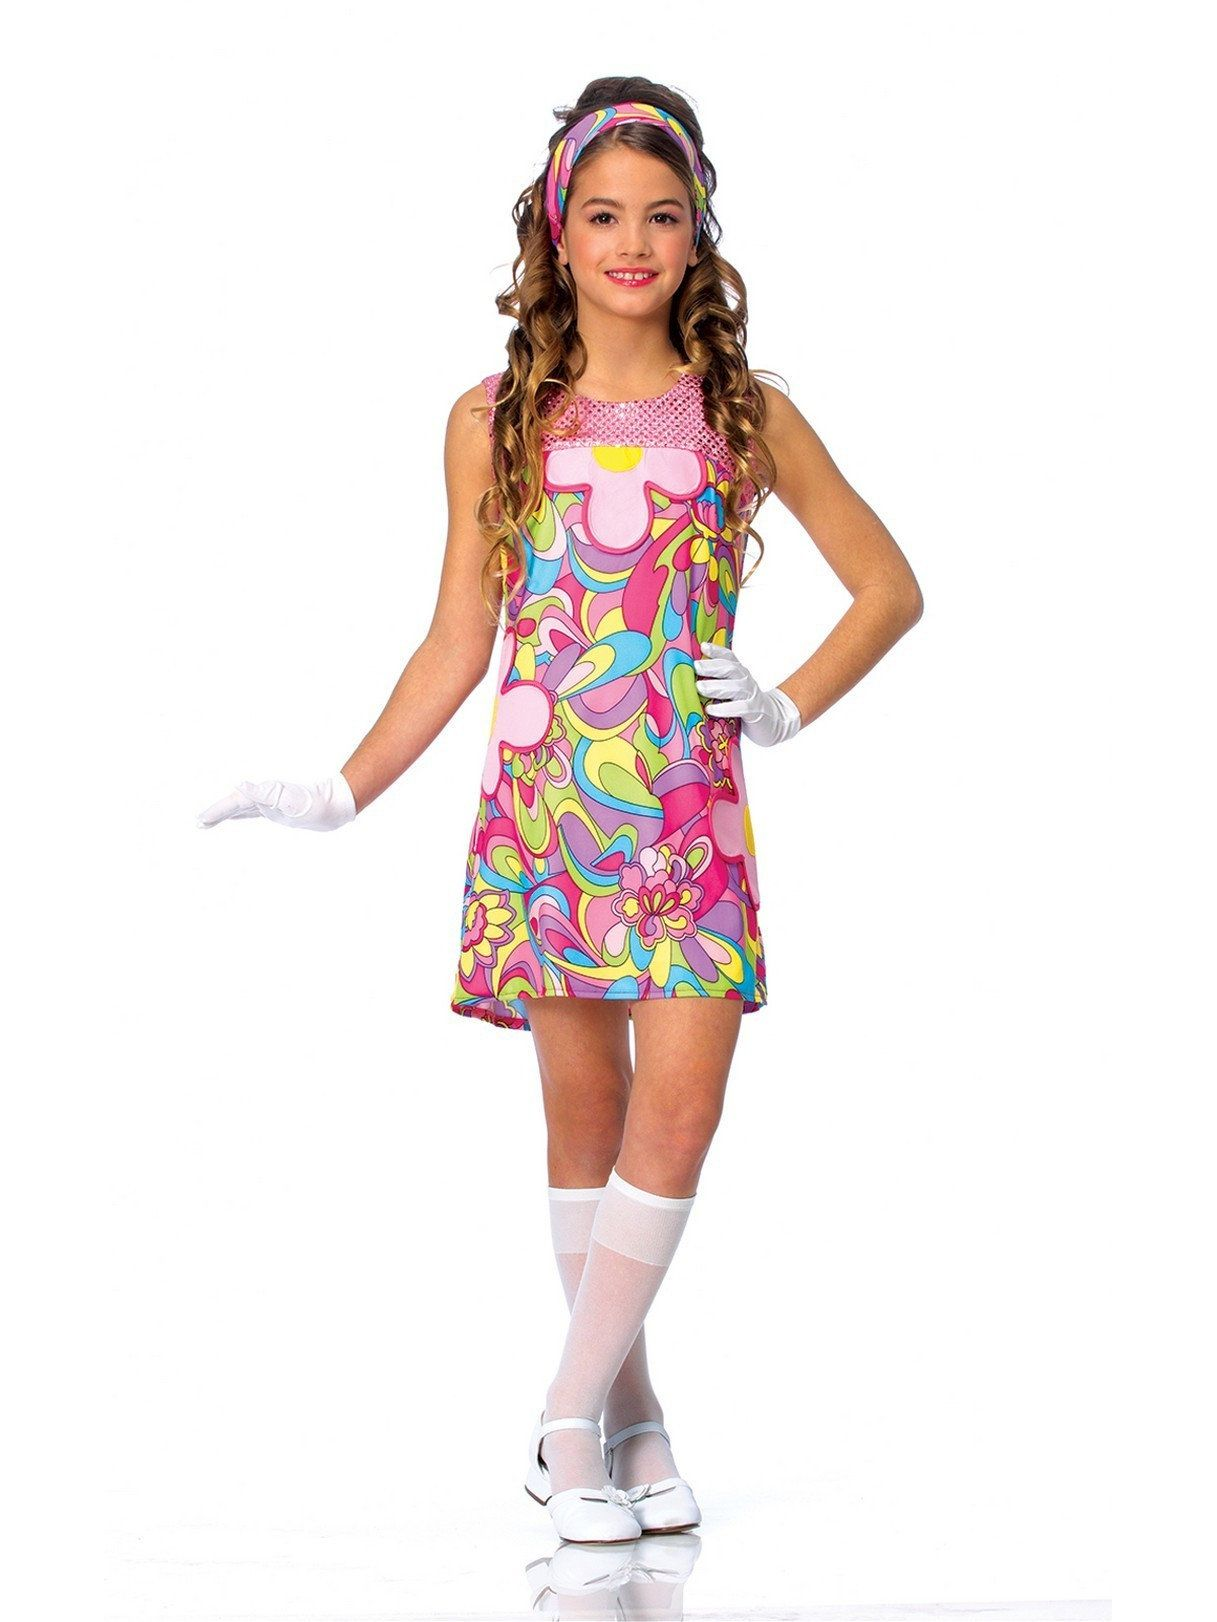 9b5ab0f37d94 Groovy Girl Child Costume - Girls Costumes for 2018